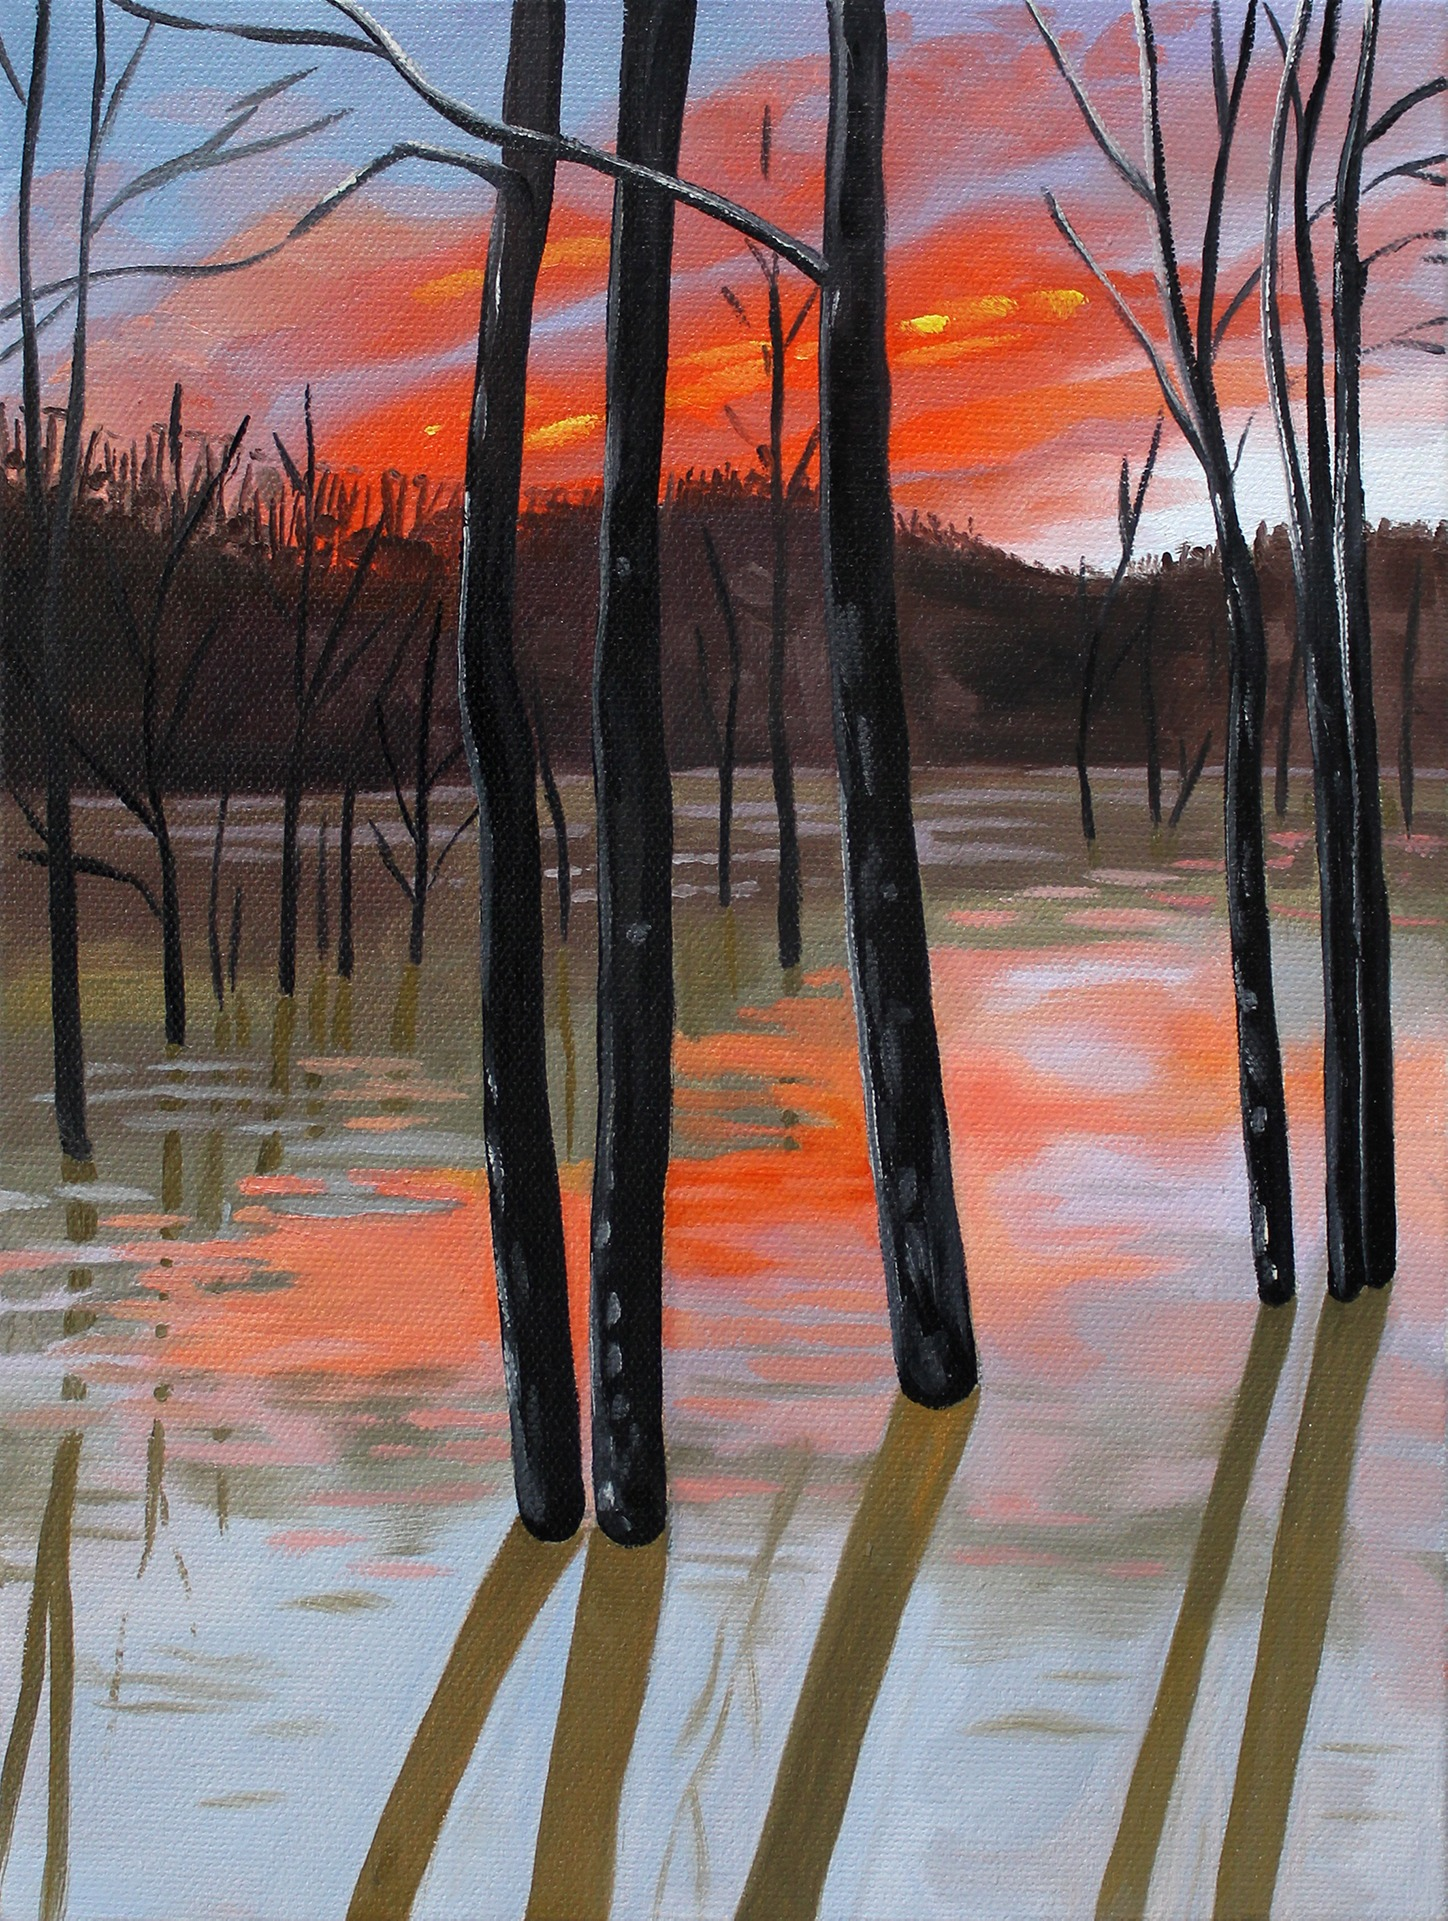 A painting by Lina Tharsing titled One Hundred Year Flood, dated 2021.